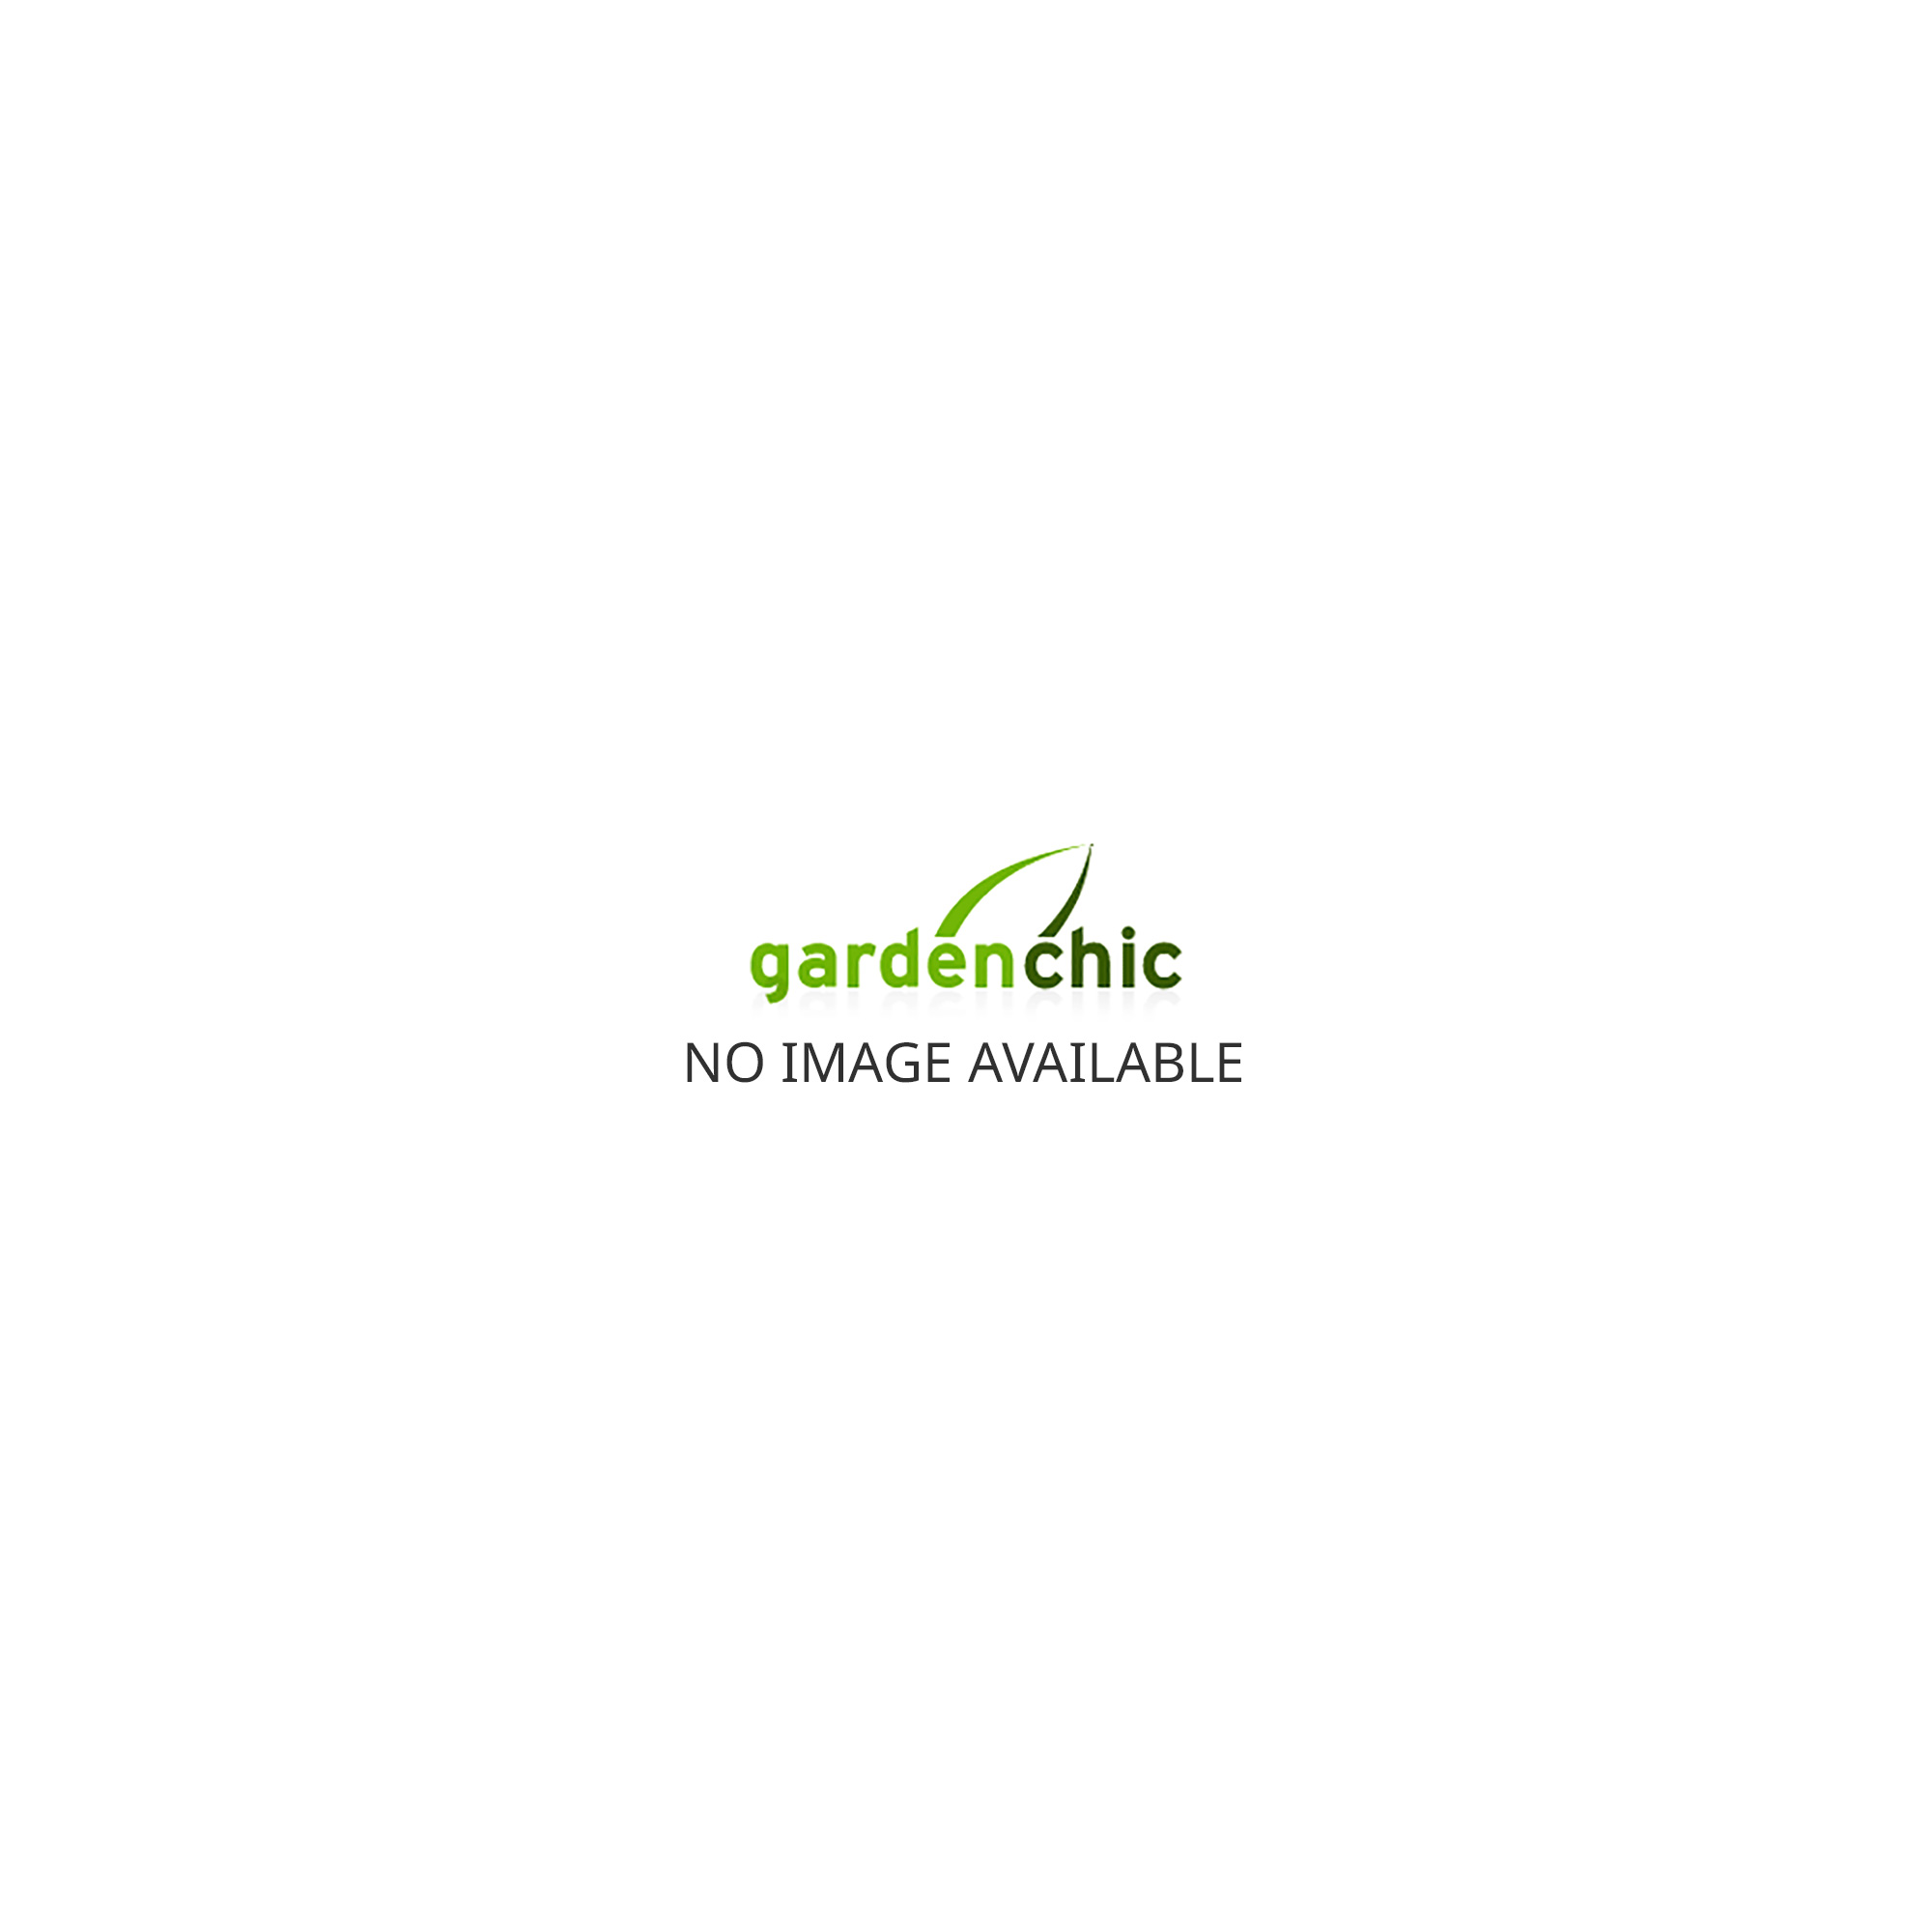 Elite Zenith 800 8ft 5ins Wide Greenhouse with Included Accessories